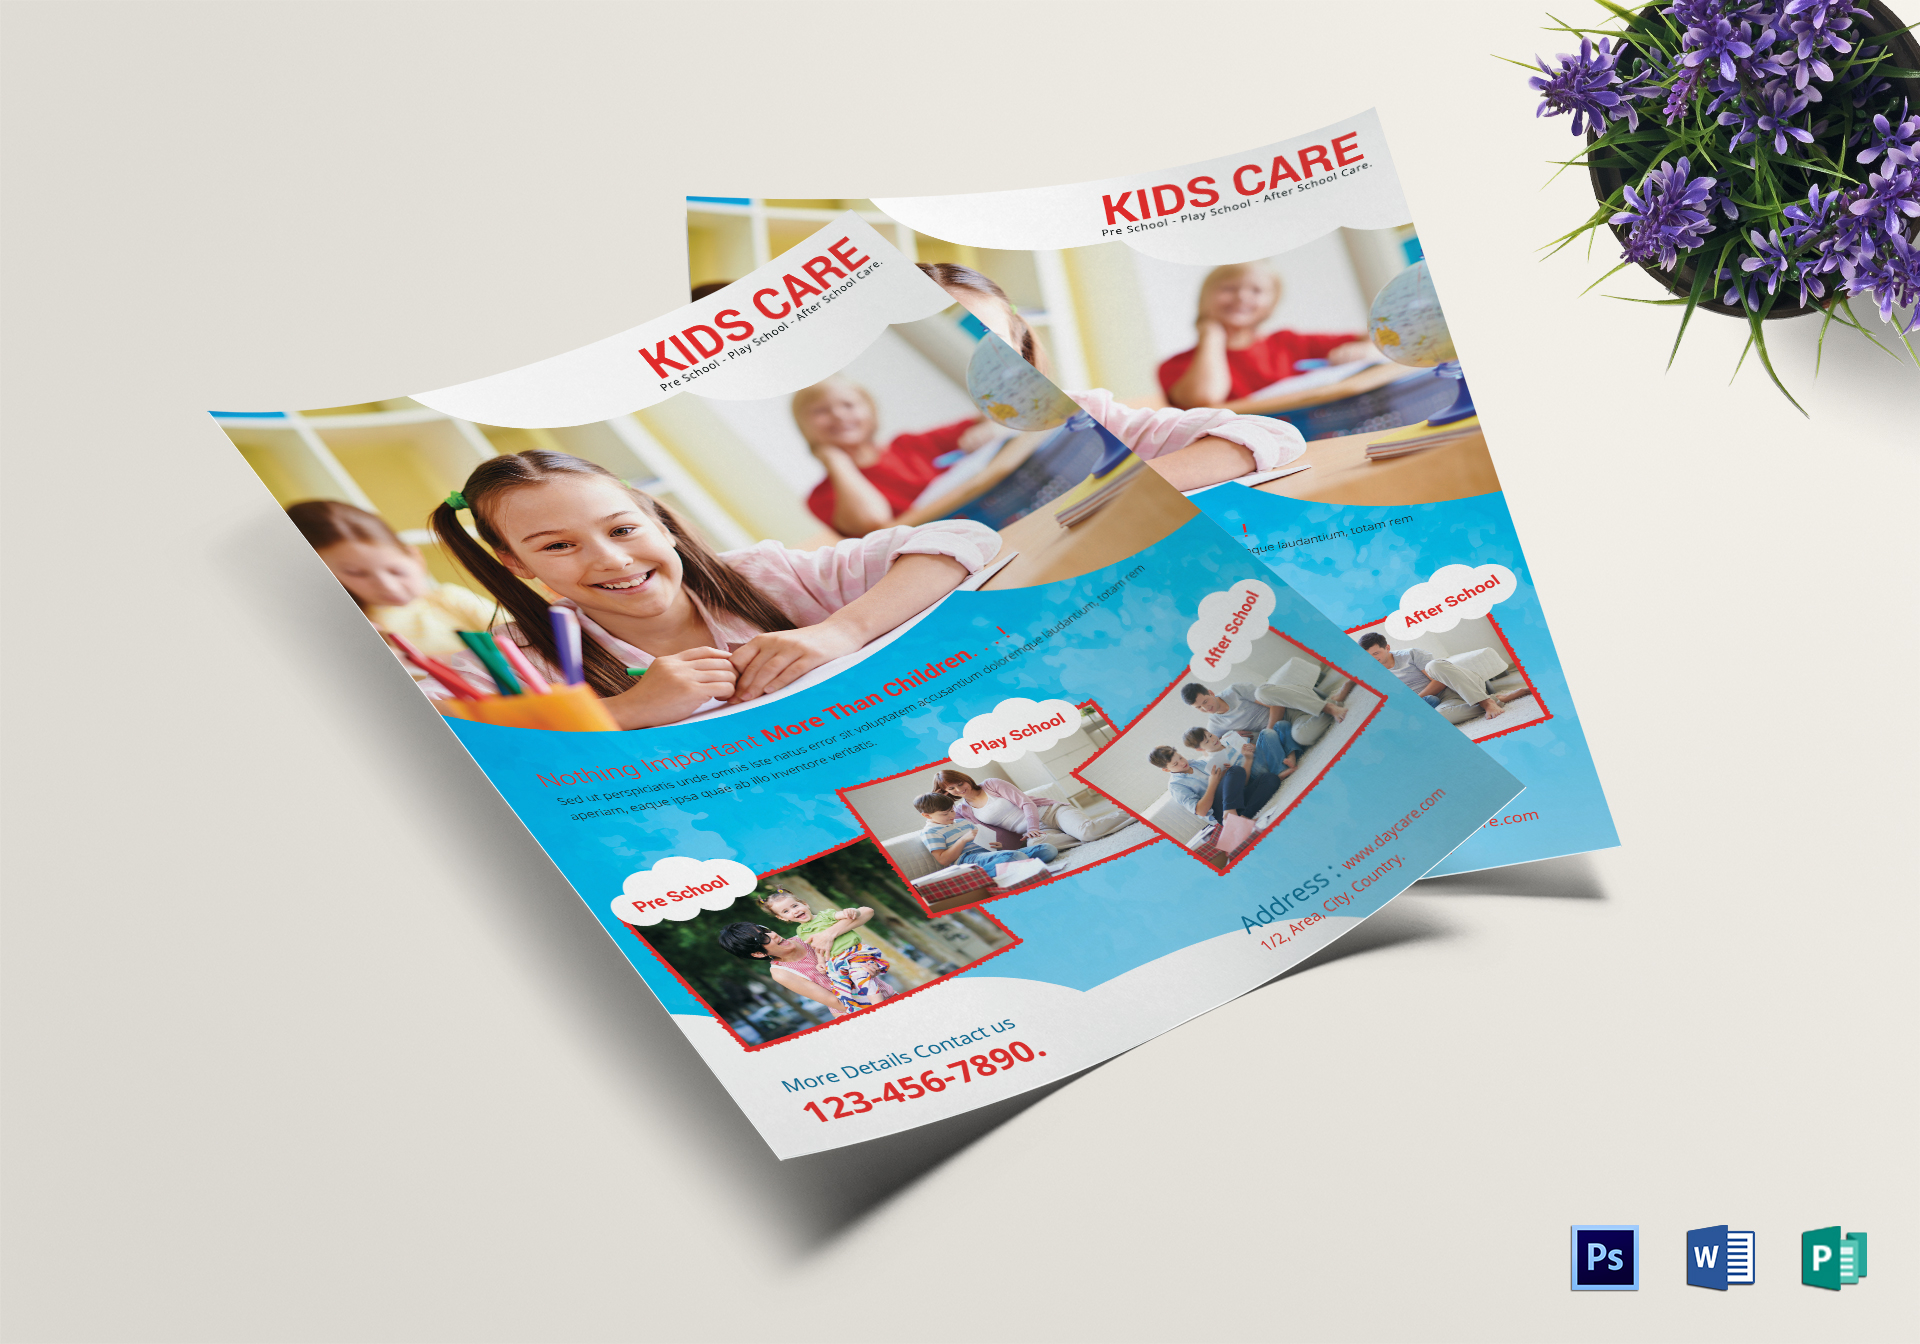 Scholar Kids Care Centre Flyer Design Template in PSD, Word, Publisher